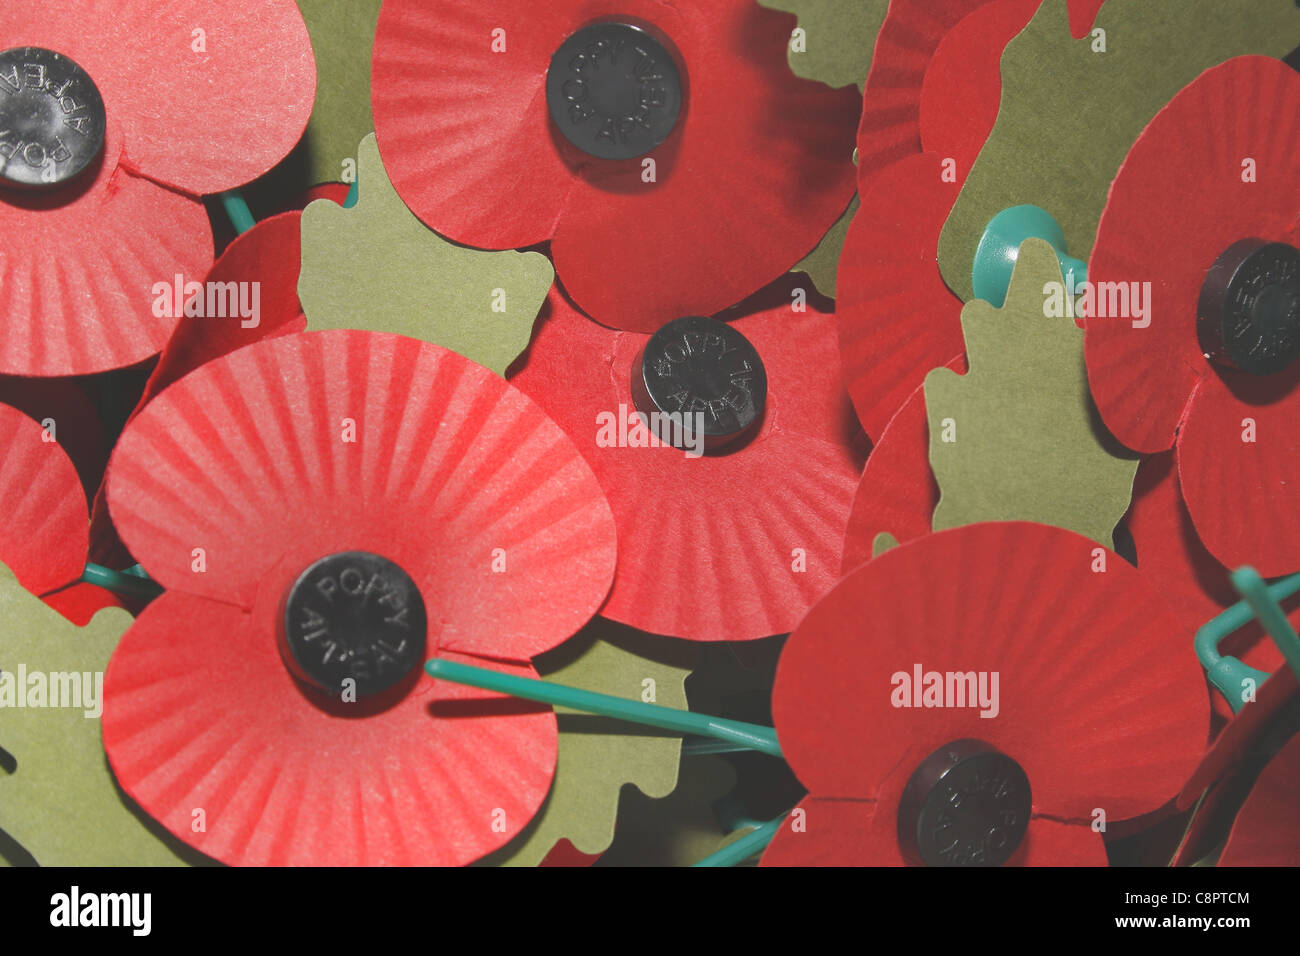 image of red poppies commemorating world war - Stock Image